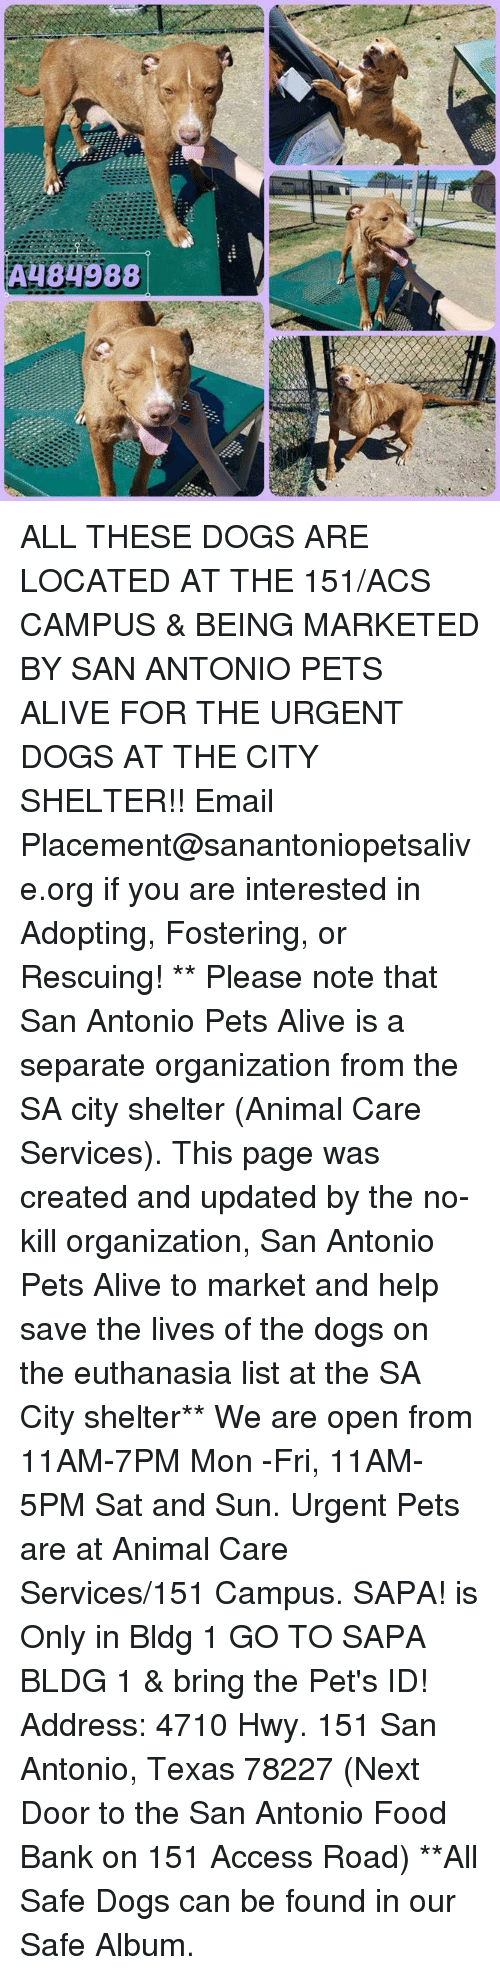 Alive, Dogs, and Food: A484988 ALL THESE DOGS ARE LOCATED AT THE 151/ACS CAMPUS & BEING MARKETED BY SAN ANTONIO PETS ALIVE FOR THE URGENT DOGS AT THE CITY SHELTER!!  Email Placement@sanantoniopetsalive.org if you are interested in Adopting, Fostering, or Rescuing!                                                                                                                                                                                                                                                                                                                                                             ** Please note that San Antonio Pets Alive is a separate organization from the SA city shelter (Animal Care Services). This page was created and updated by the no-kill organization, San Antonio Pets Alive to market and help save the lives of the dogs on the euthanasia list at the SA City shelter**  We are open from 11AM-7PM Mon -Fri, 11AM-5PM Sat and Sun. Urgent Pets are at Animal Care Services/151 Campus. SAPA! is Only in Bldg 1 GO TO SAPA BLDG 1 & bring the Pet's ID! Address: 4710 Hwy. 151 San Antonio, Texas 78227 (Next Door to the San Antonio Food Bank on 151 Access Road) **All Safe Dogs can be found in our Safe Album.